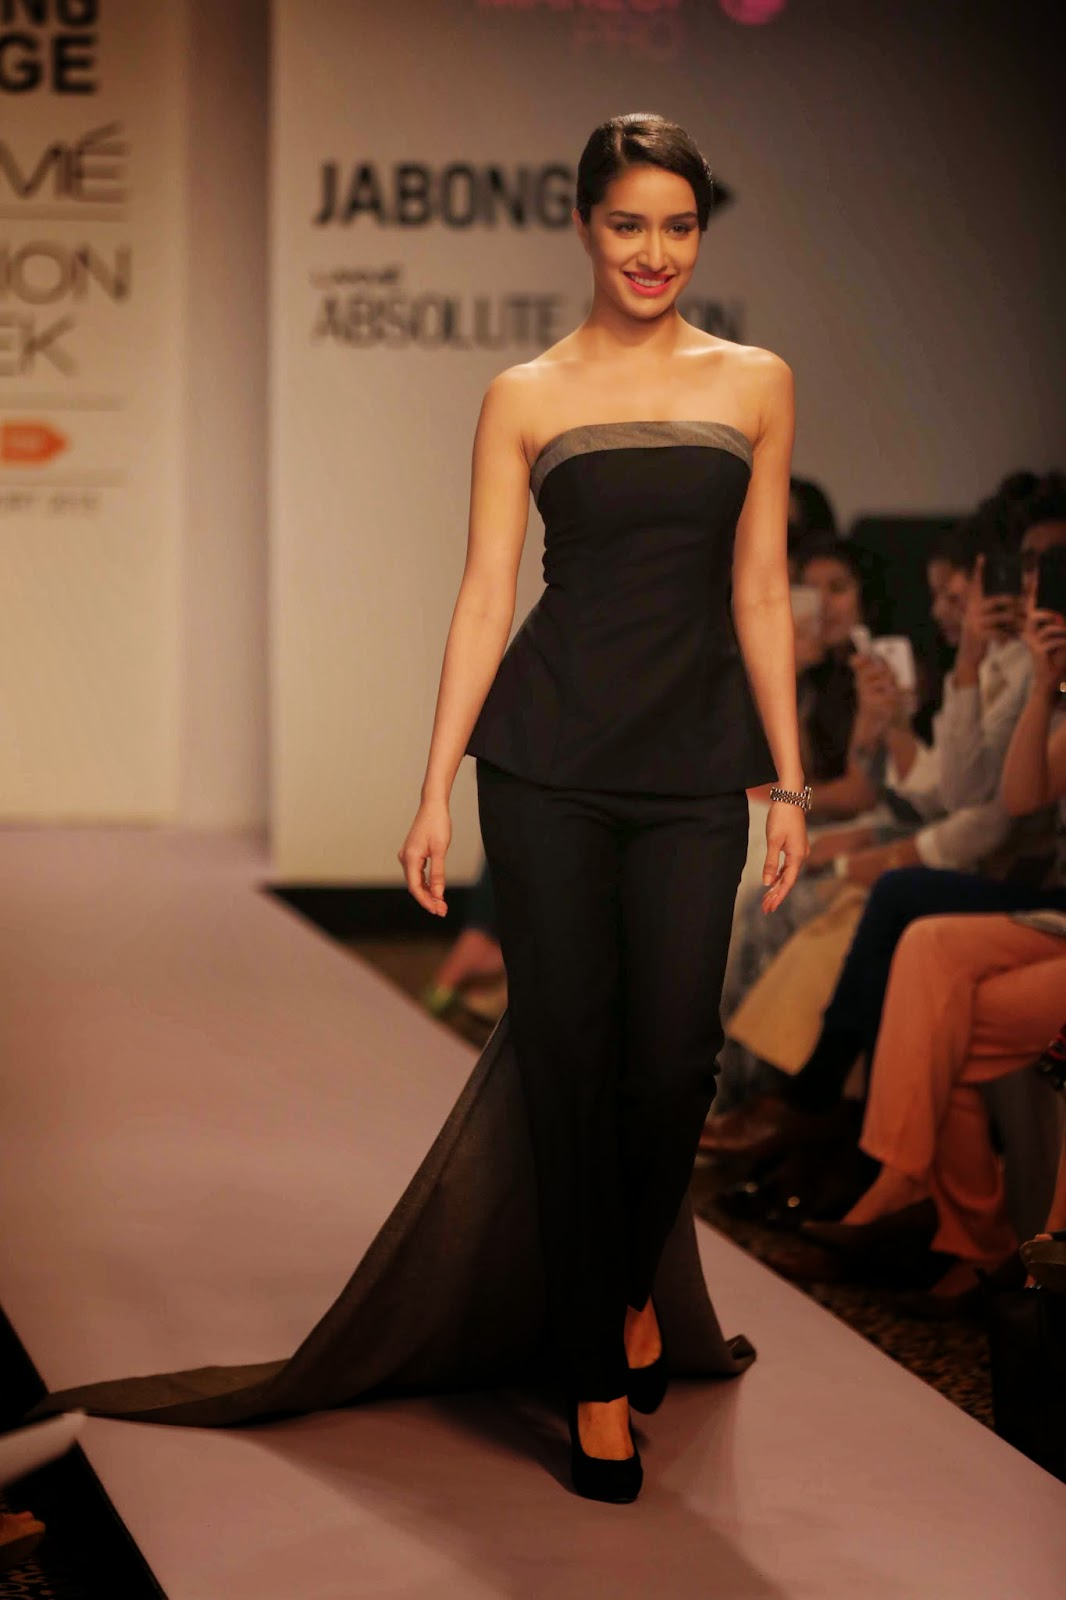 http://aquaintperspective.blogspot.in/, LIFW Day 1